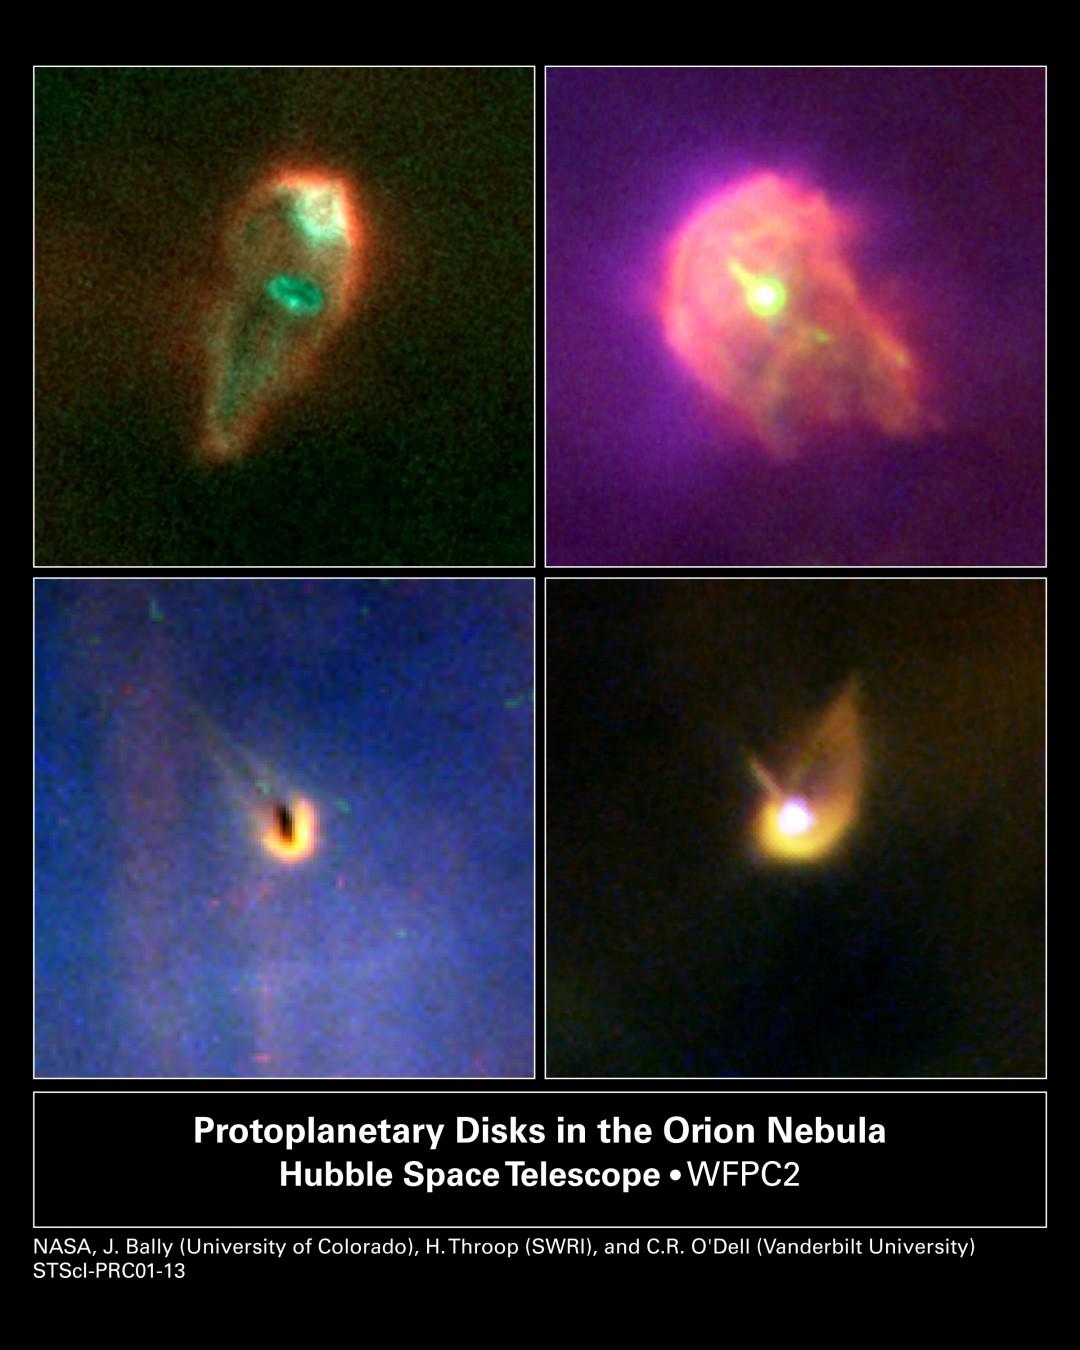 http://hubblesite.org/newscenter/archive/releases/2001/13/image/a/